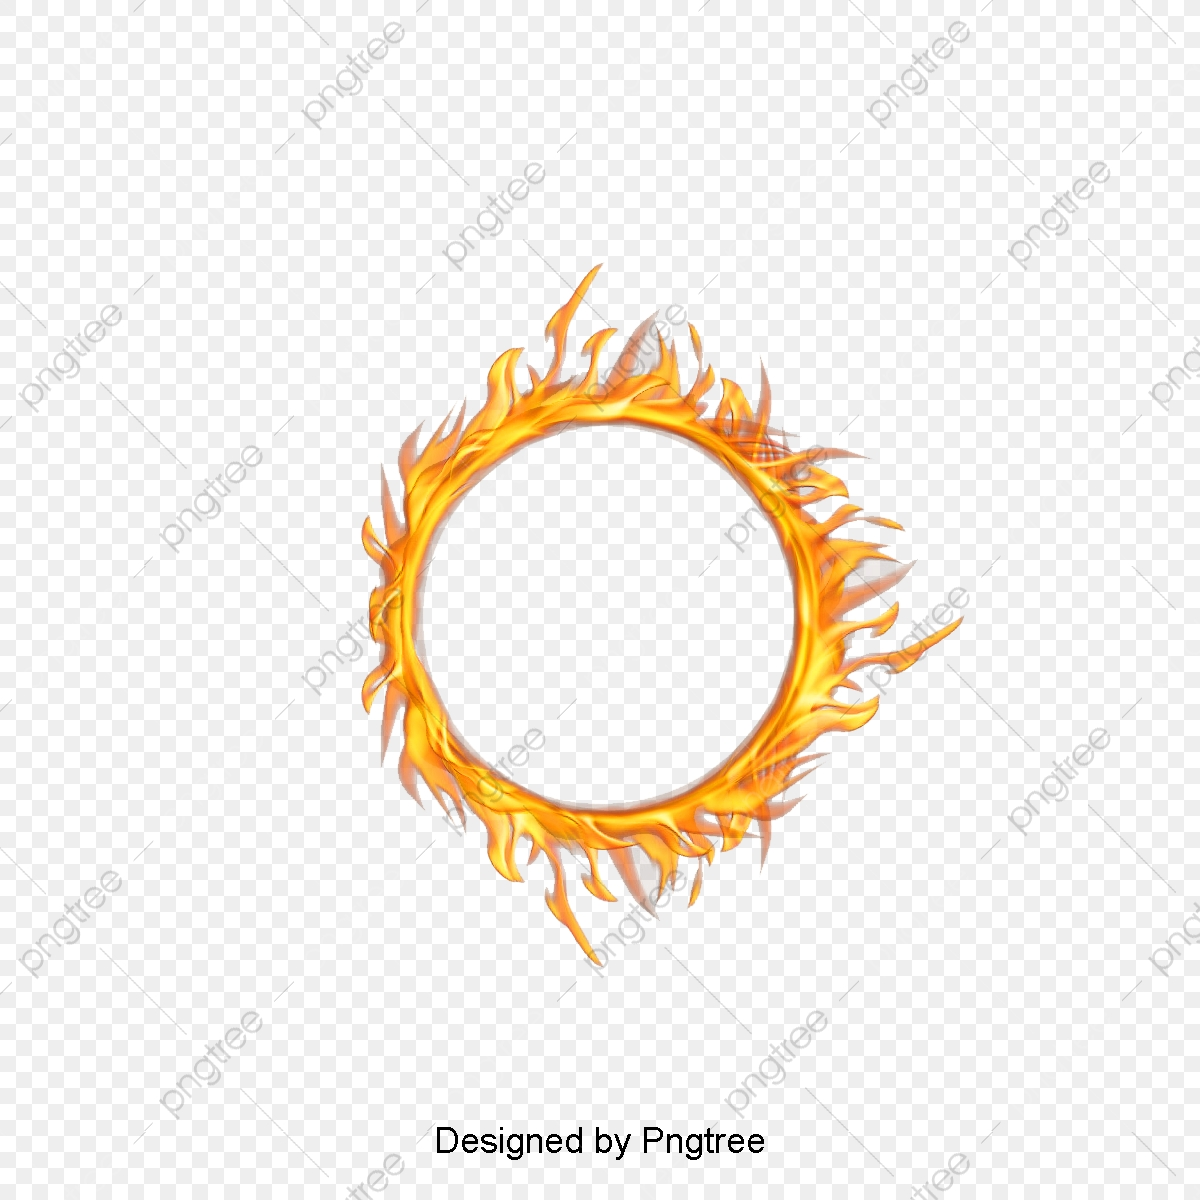 fire ring fire effect fire clipart png transparent clipart image and psd file for free download https pngtree com freepng fire ring 177508 html